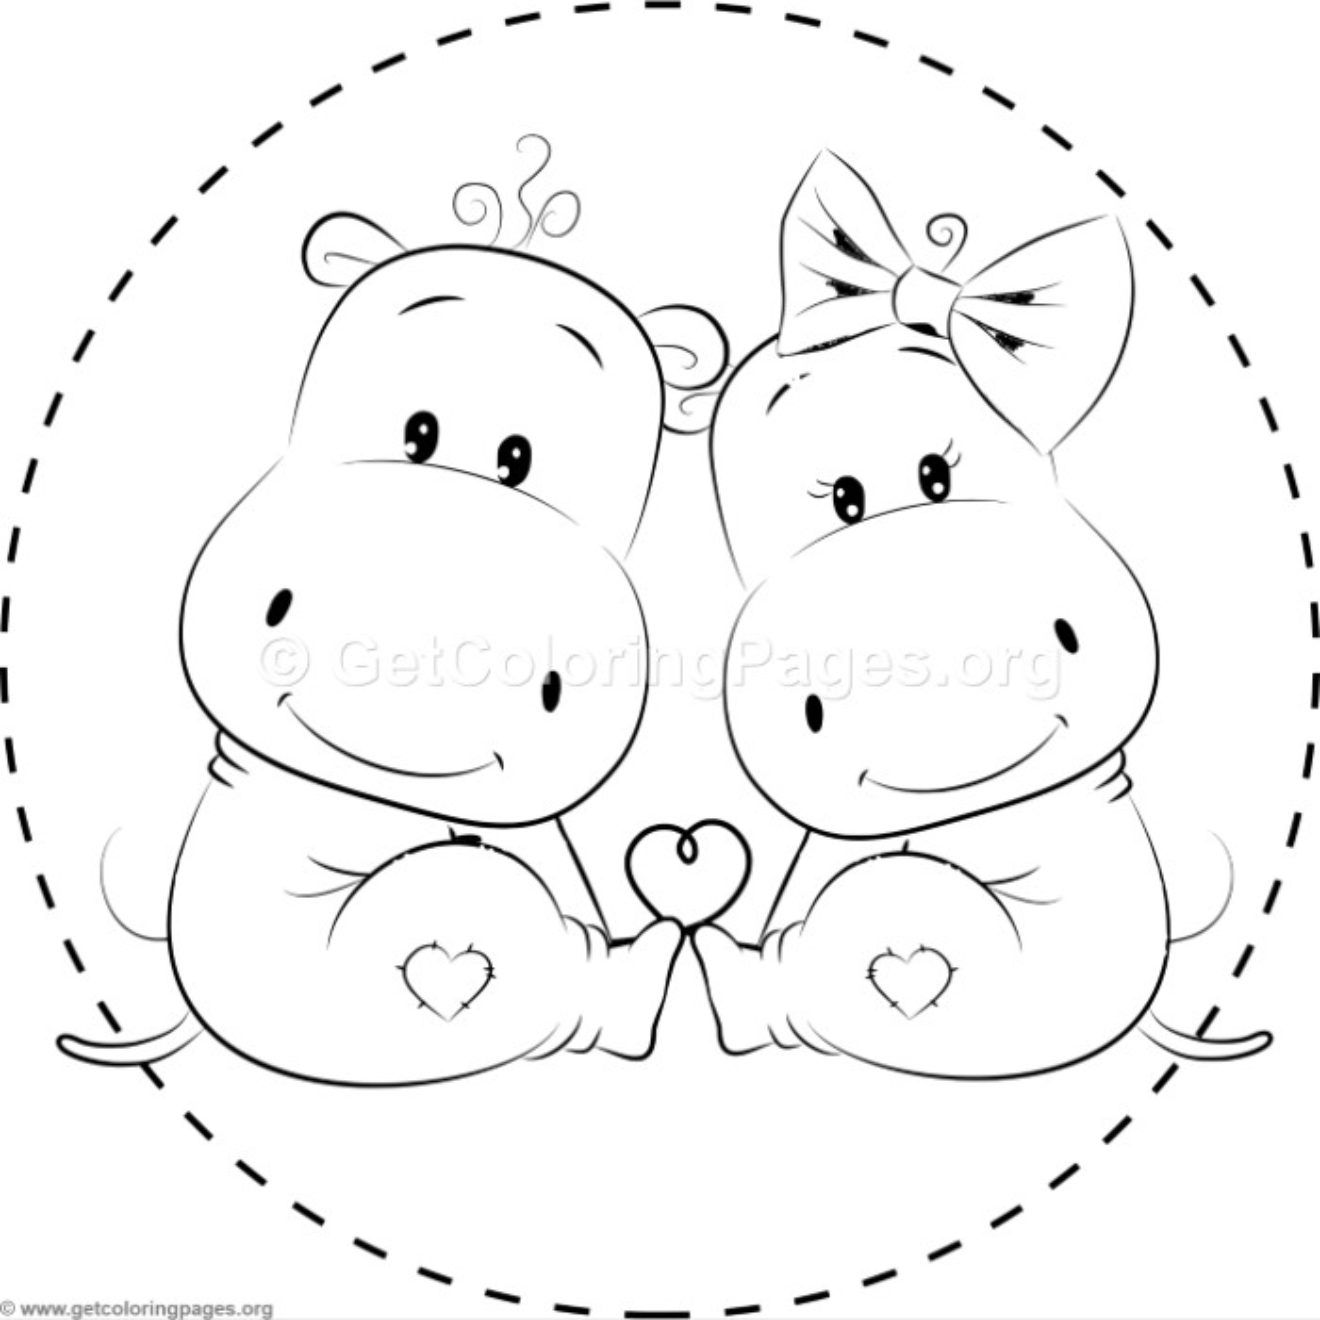 Cute Hippo Coloring Pages Getcoloringpages Org Cute Hippo